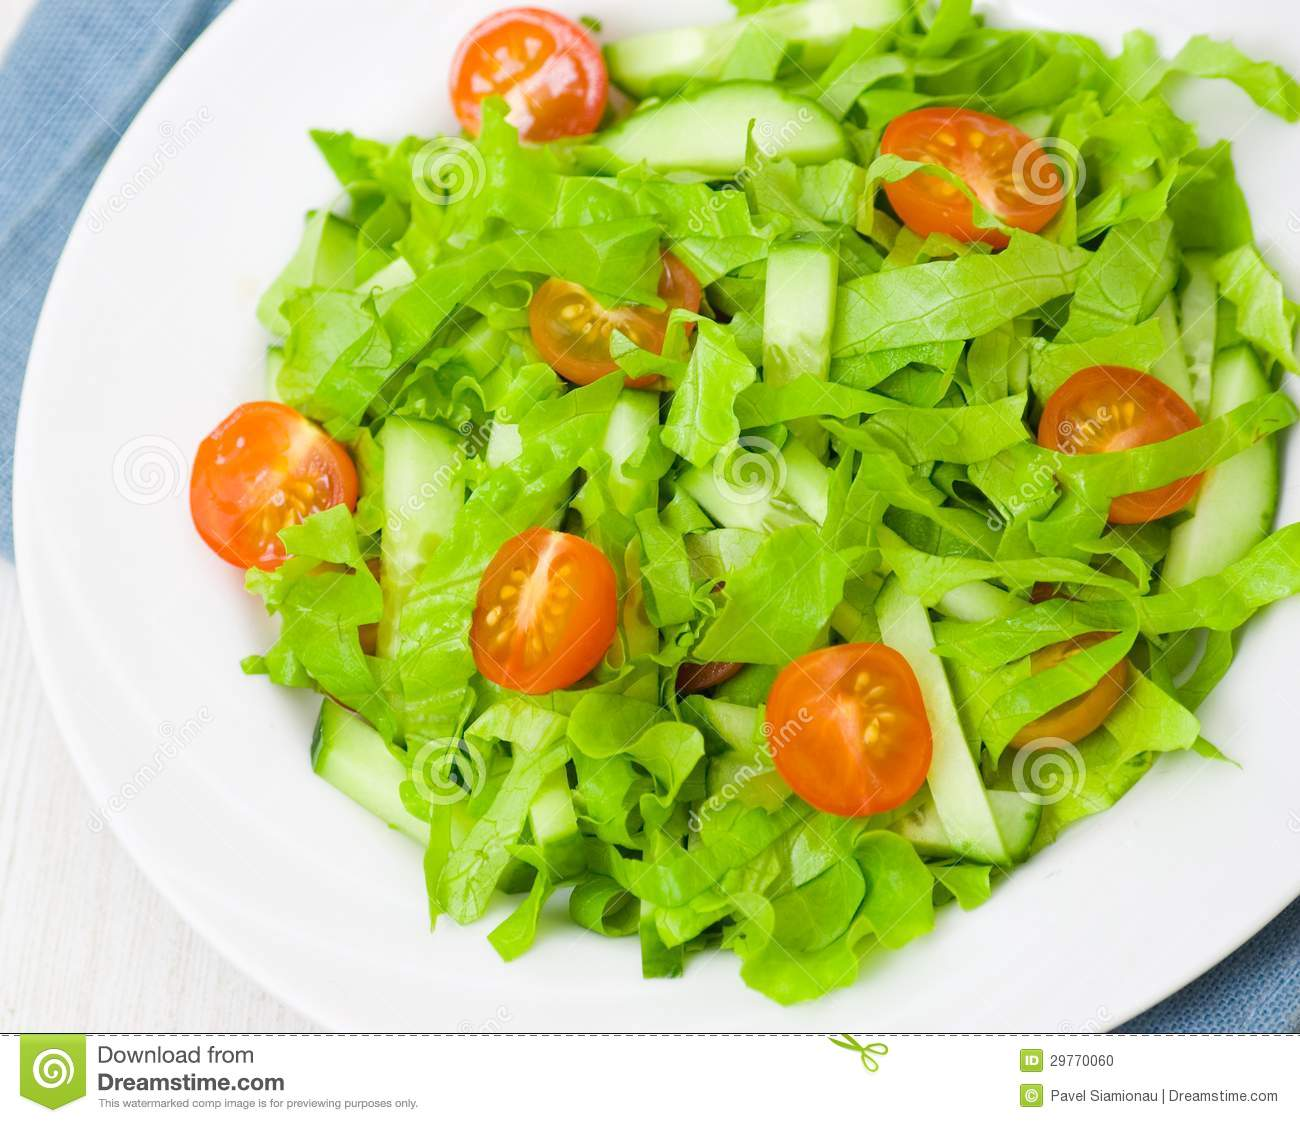 Fresh Vegetable Salad With Lettuce, Tomato And Cucumber Stock Photo ...